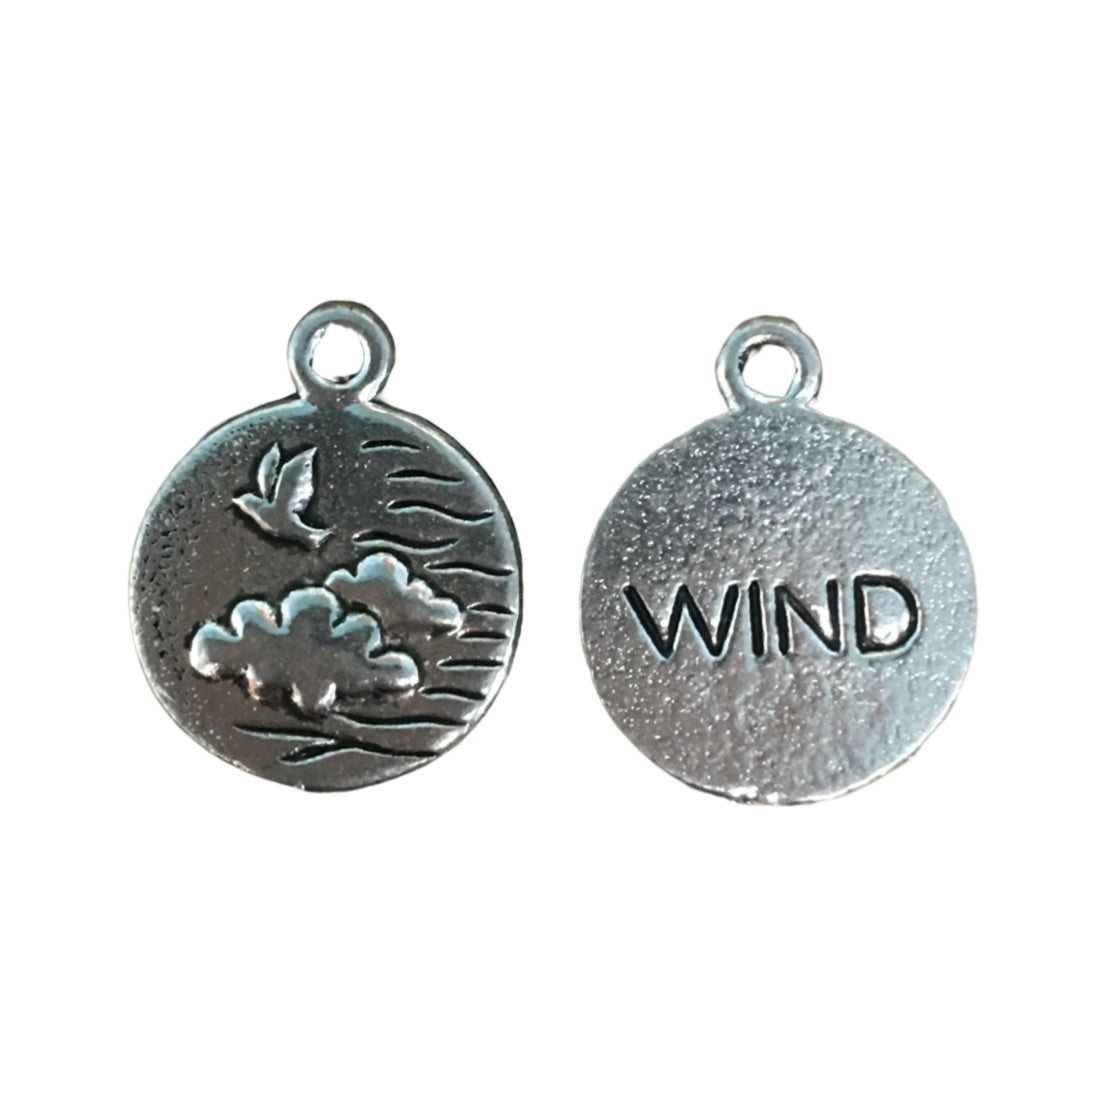 Wind Element Charms - Qty of 5 Charms - Lead Free Pewter Silver - American Made